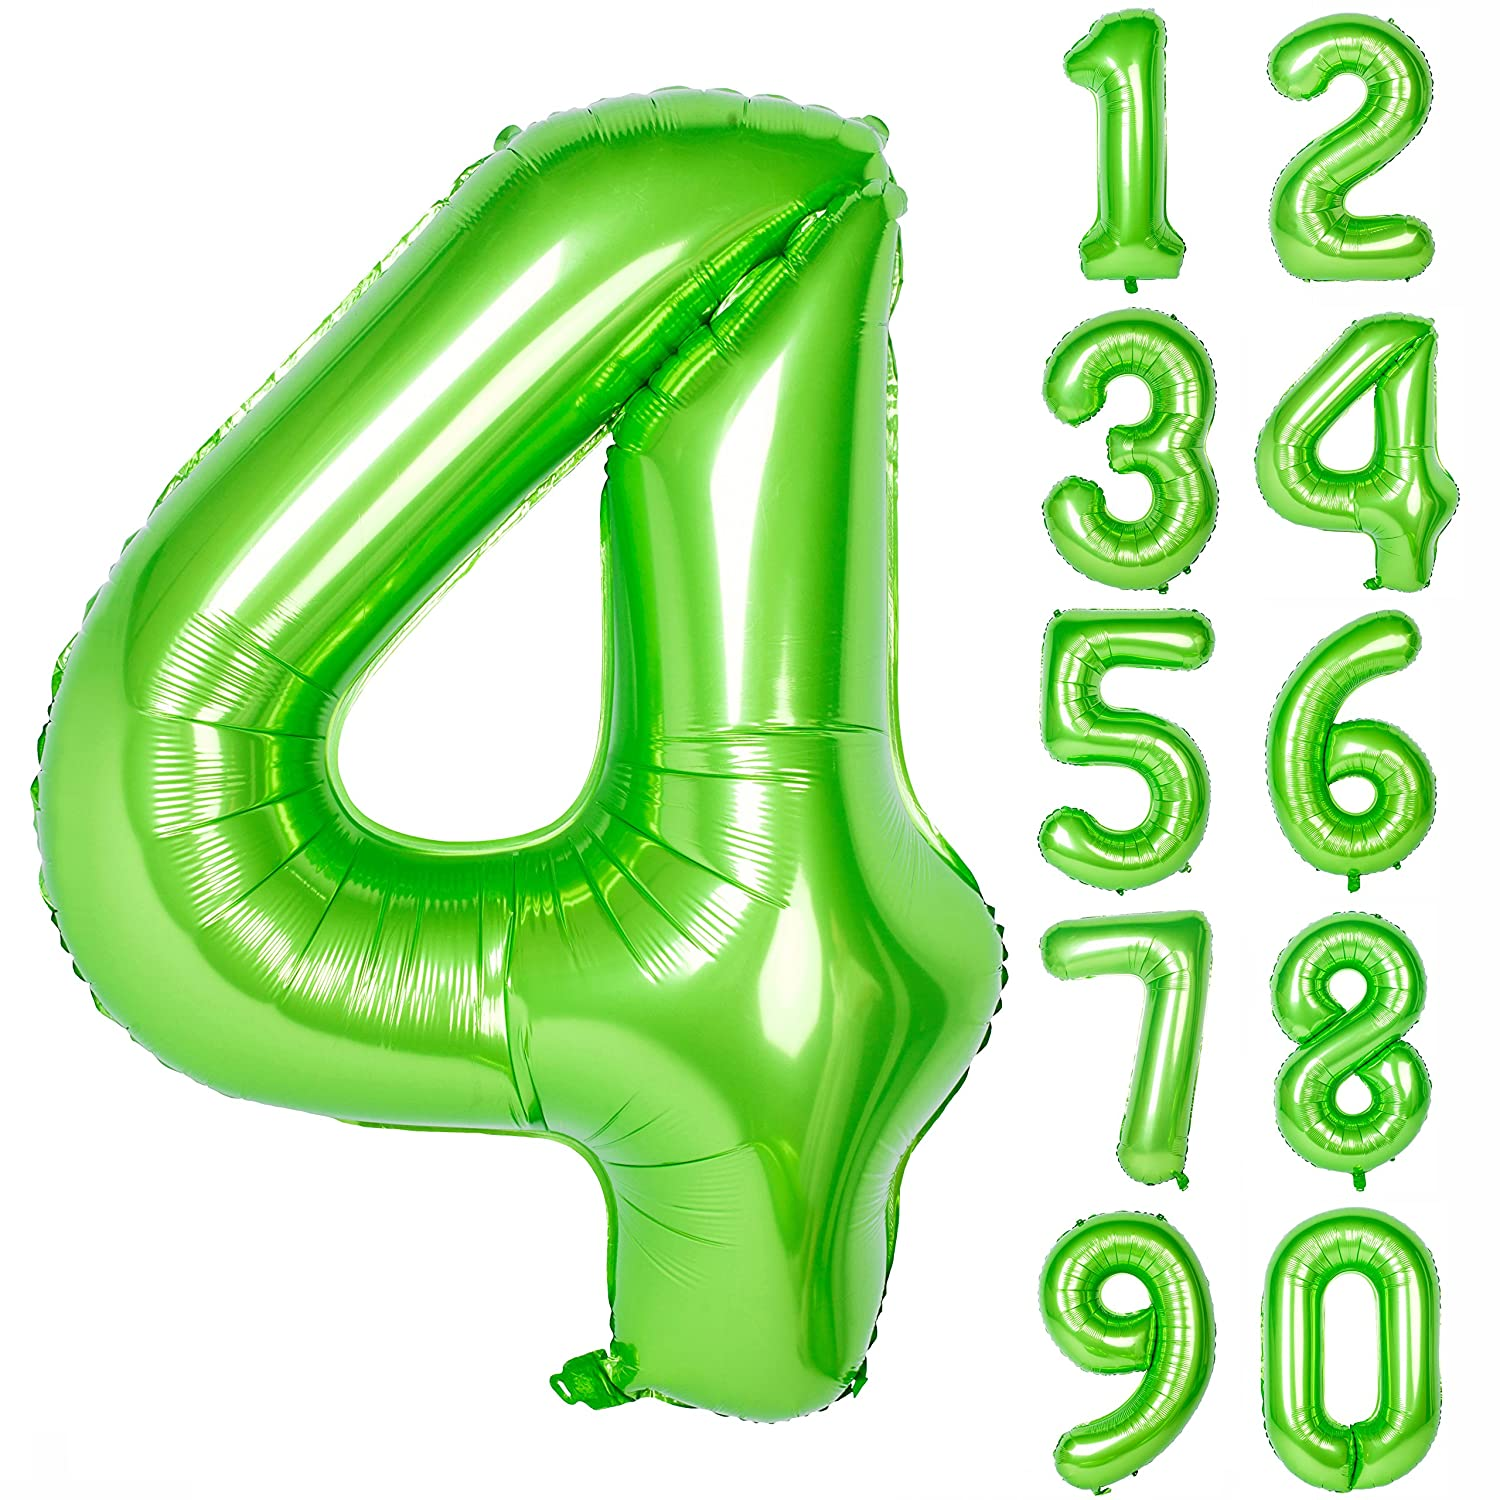 40 Inch Green Large Numbers 0-9 Birthday Party Decorations Helium Foil Mylar Big Number Balloon Digital 4